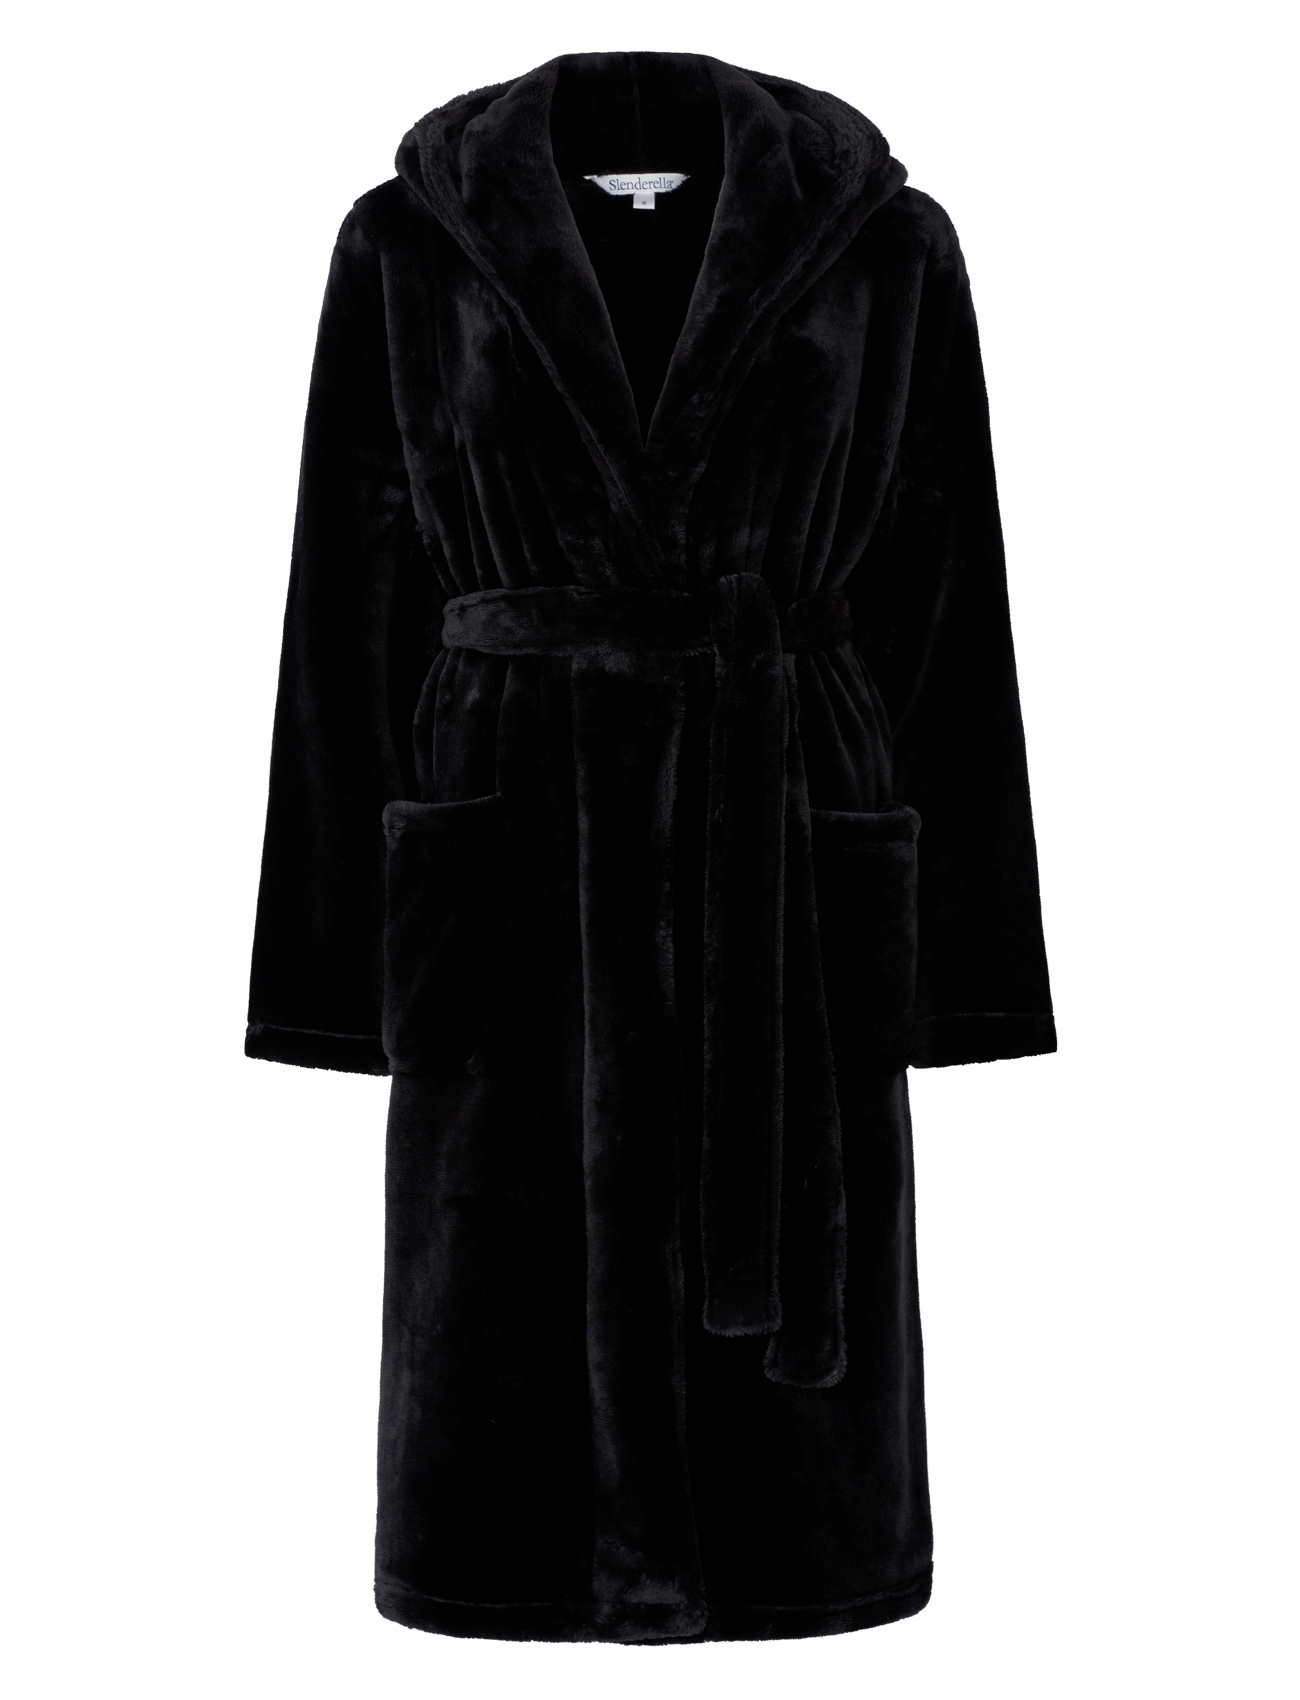 dressing gown luxury super soft thick fleece ladies hooded. Black Bedroom Furniture Sets. Home Design Ideas